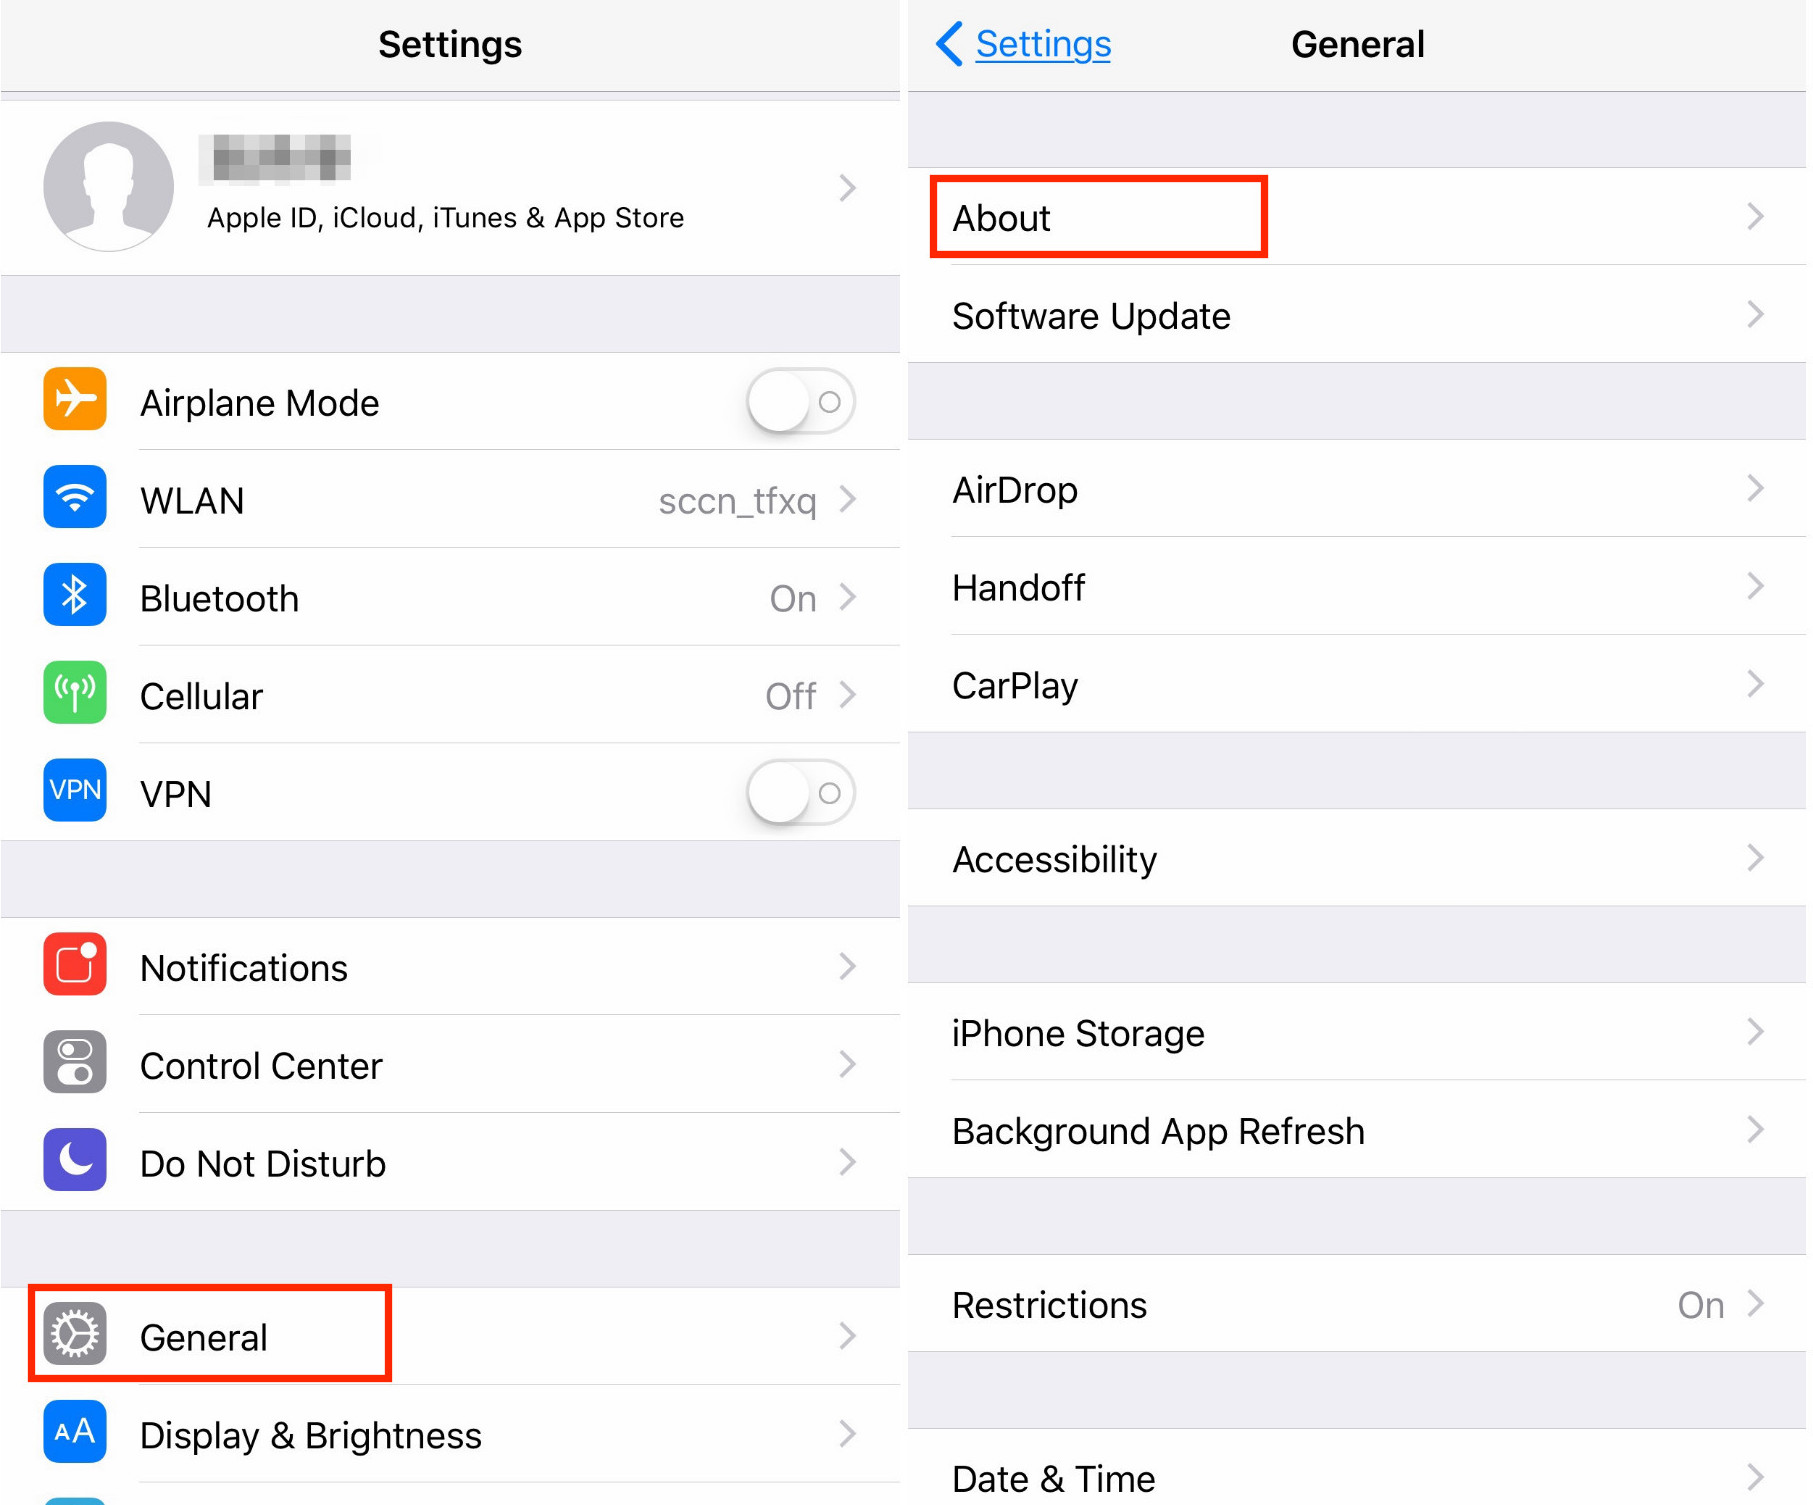 How to Check 32-Bit Apps on iPhone iPad in iOS 11 - Step 2